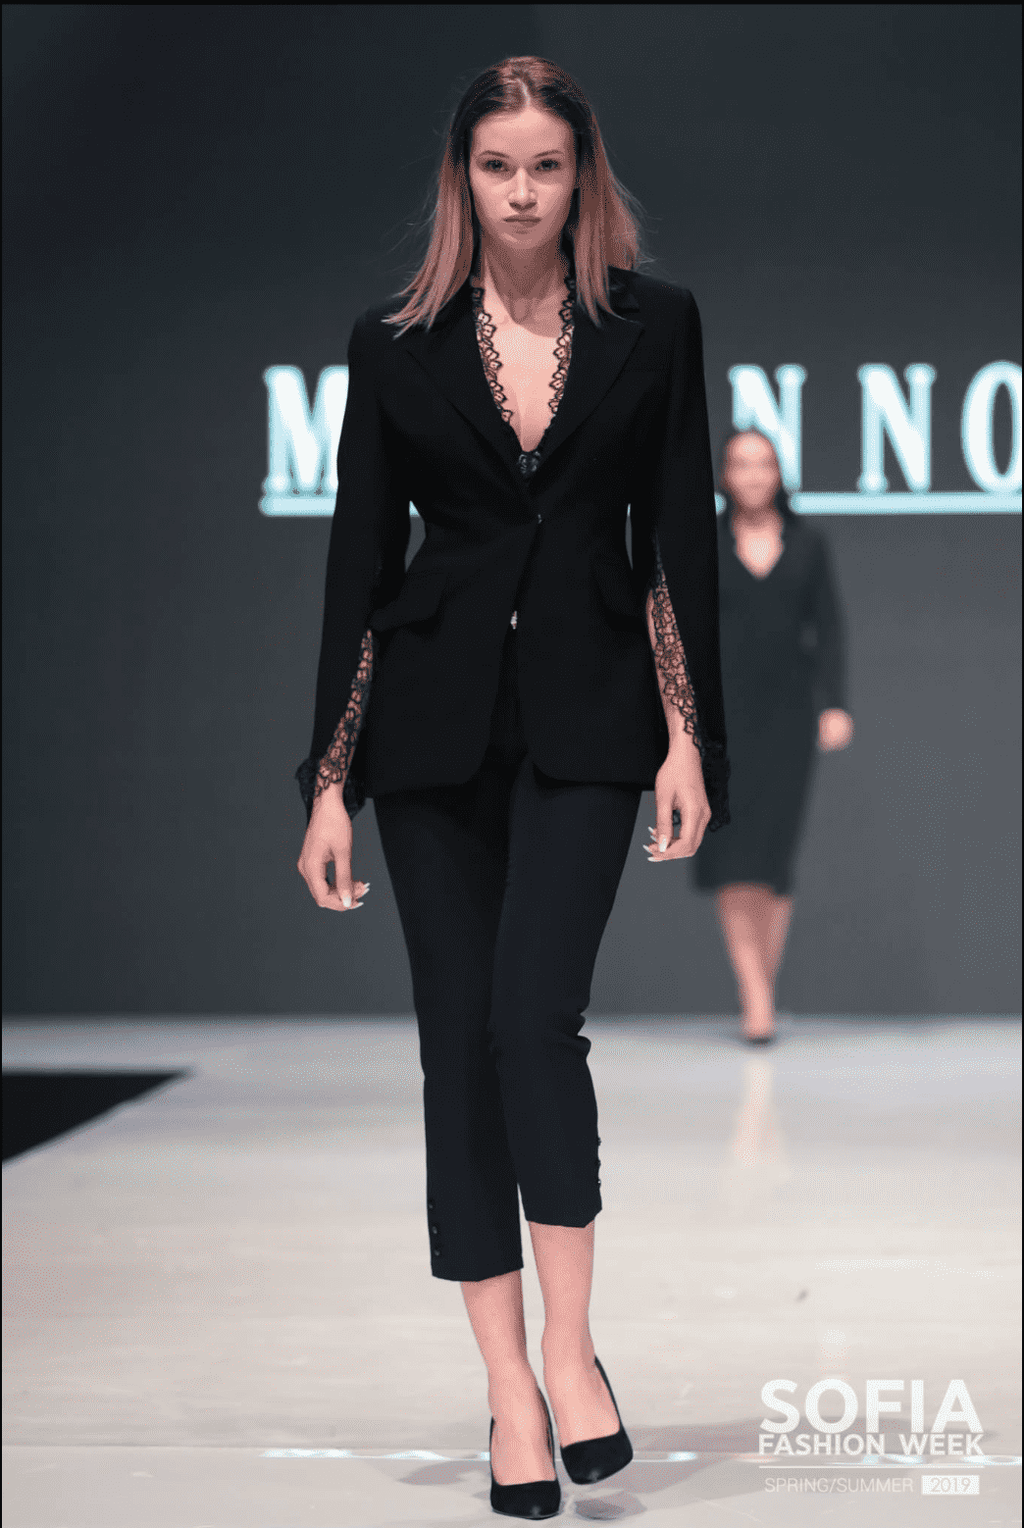 Black Suit with Lace Trimmings